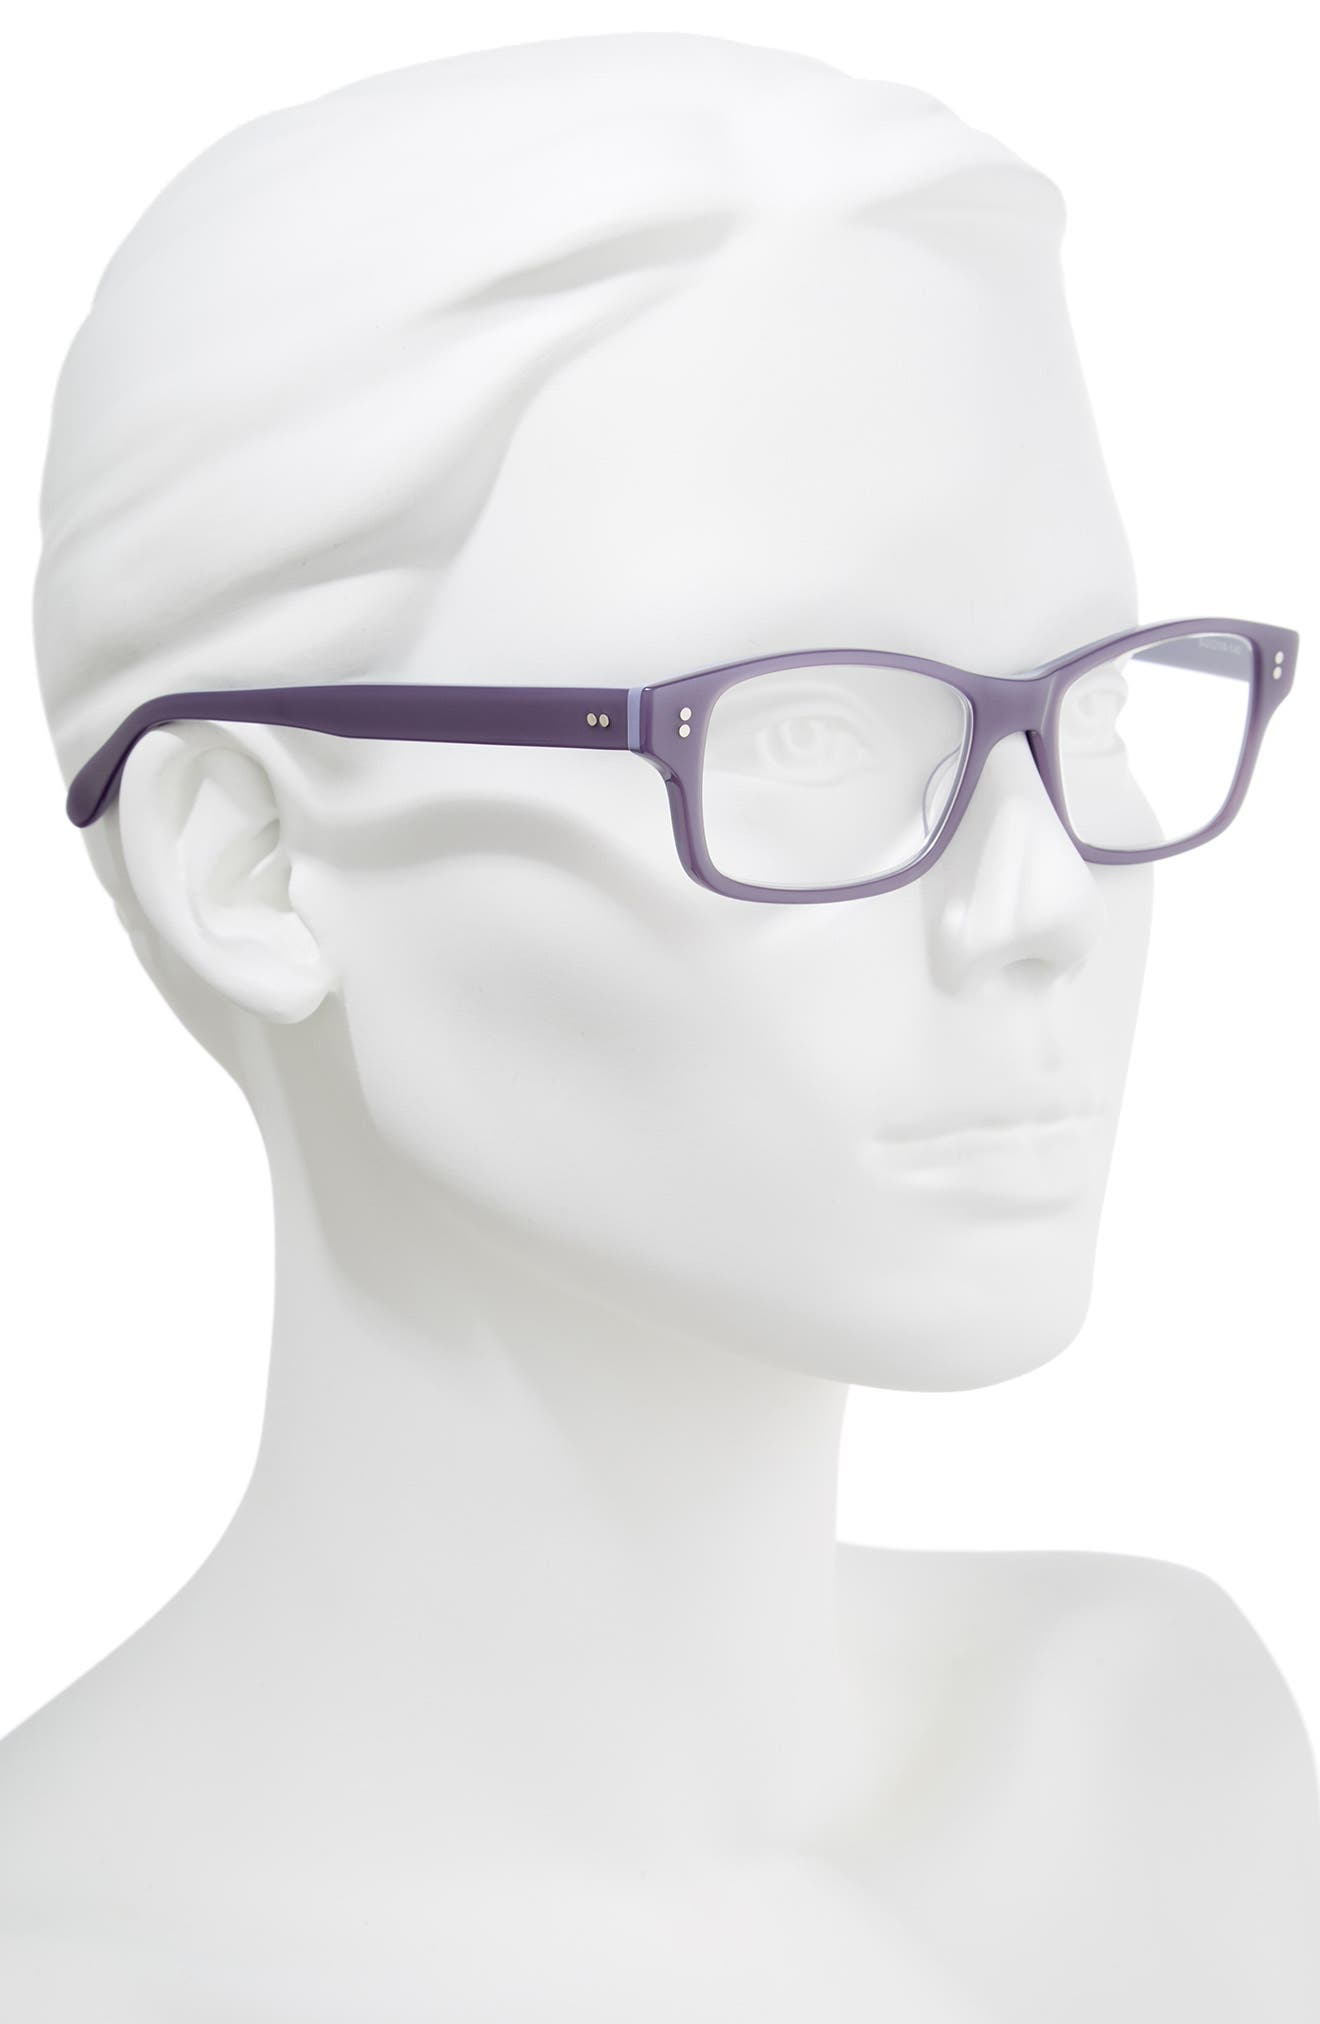 'Jess' 52mm Reading Glasses,                             Alternate thumbnail 2, color,                             VIOLET